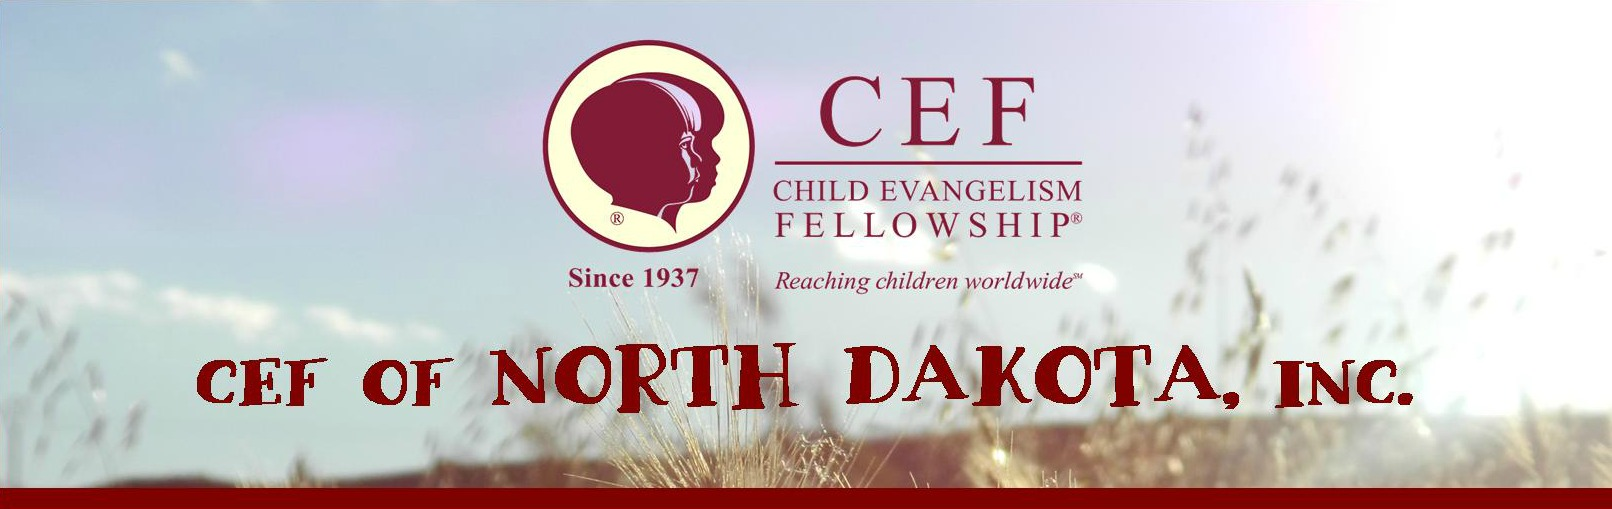 CEF of North Dakota